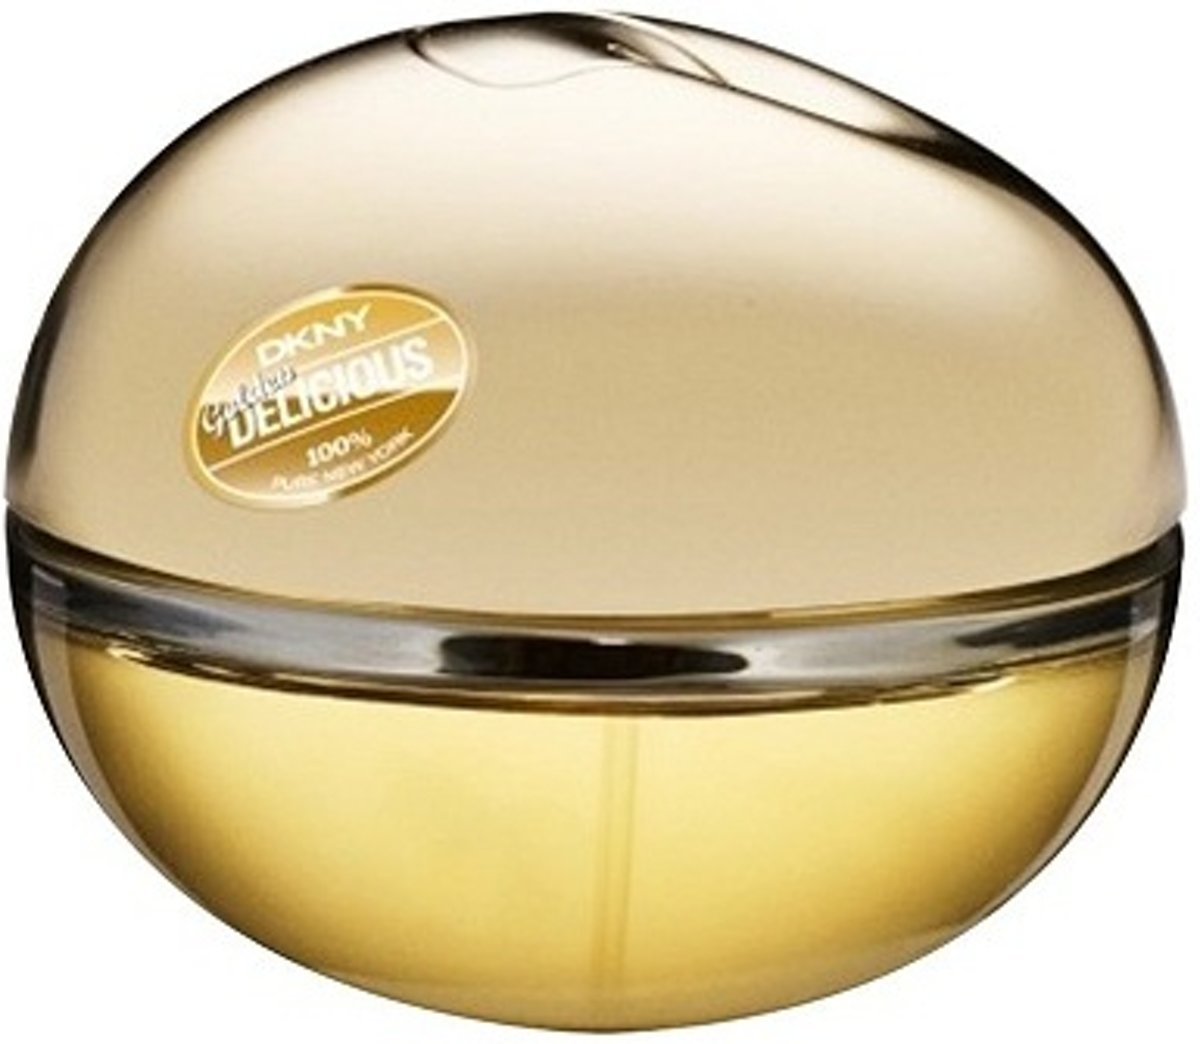 MULTI BUNDEL 2 stuks Donna Karan Golden Delicious Eau De Perfume Spray 50ml